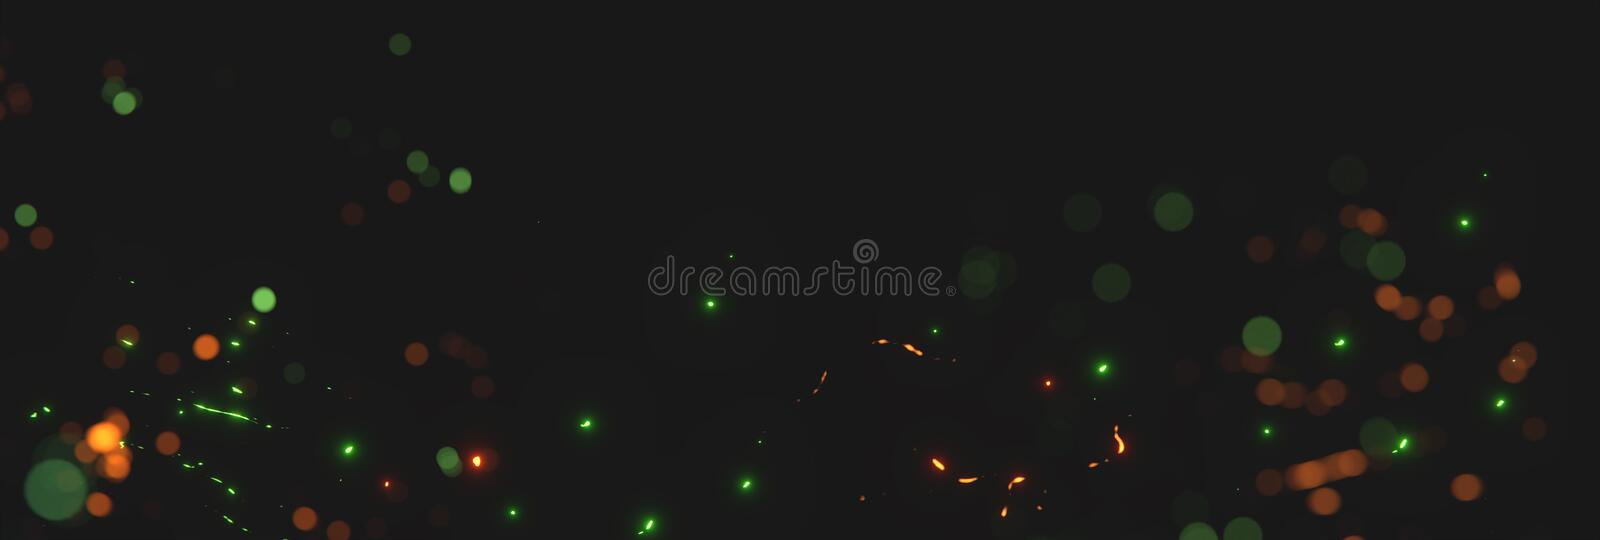 Blurred orange and green sparks from neon lights in front of black backgound stock illustration